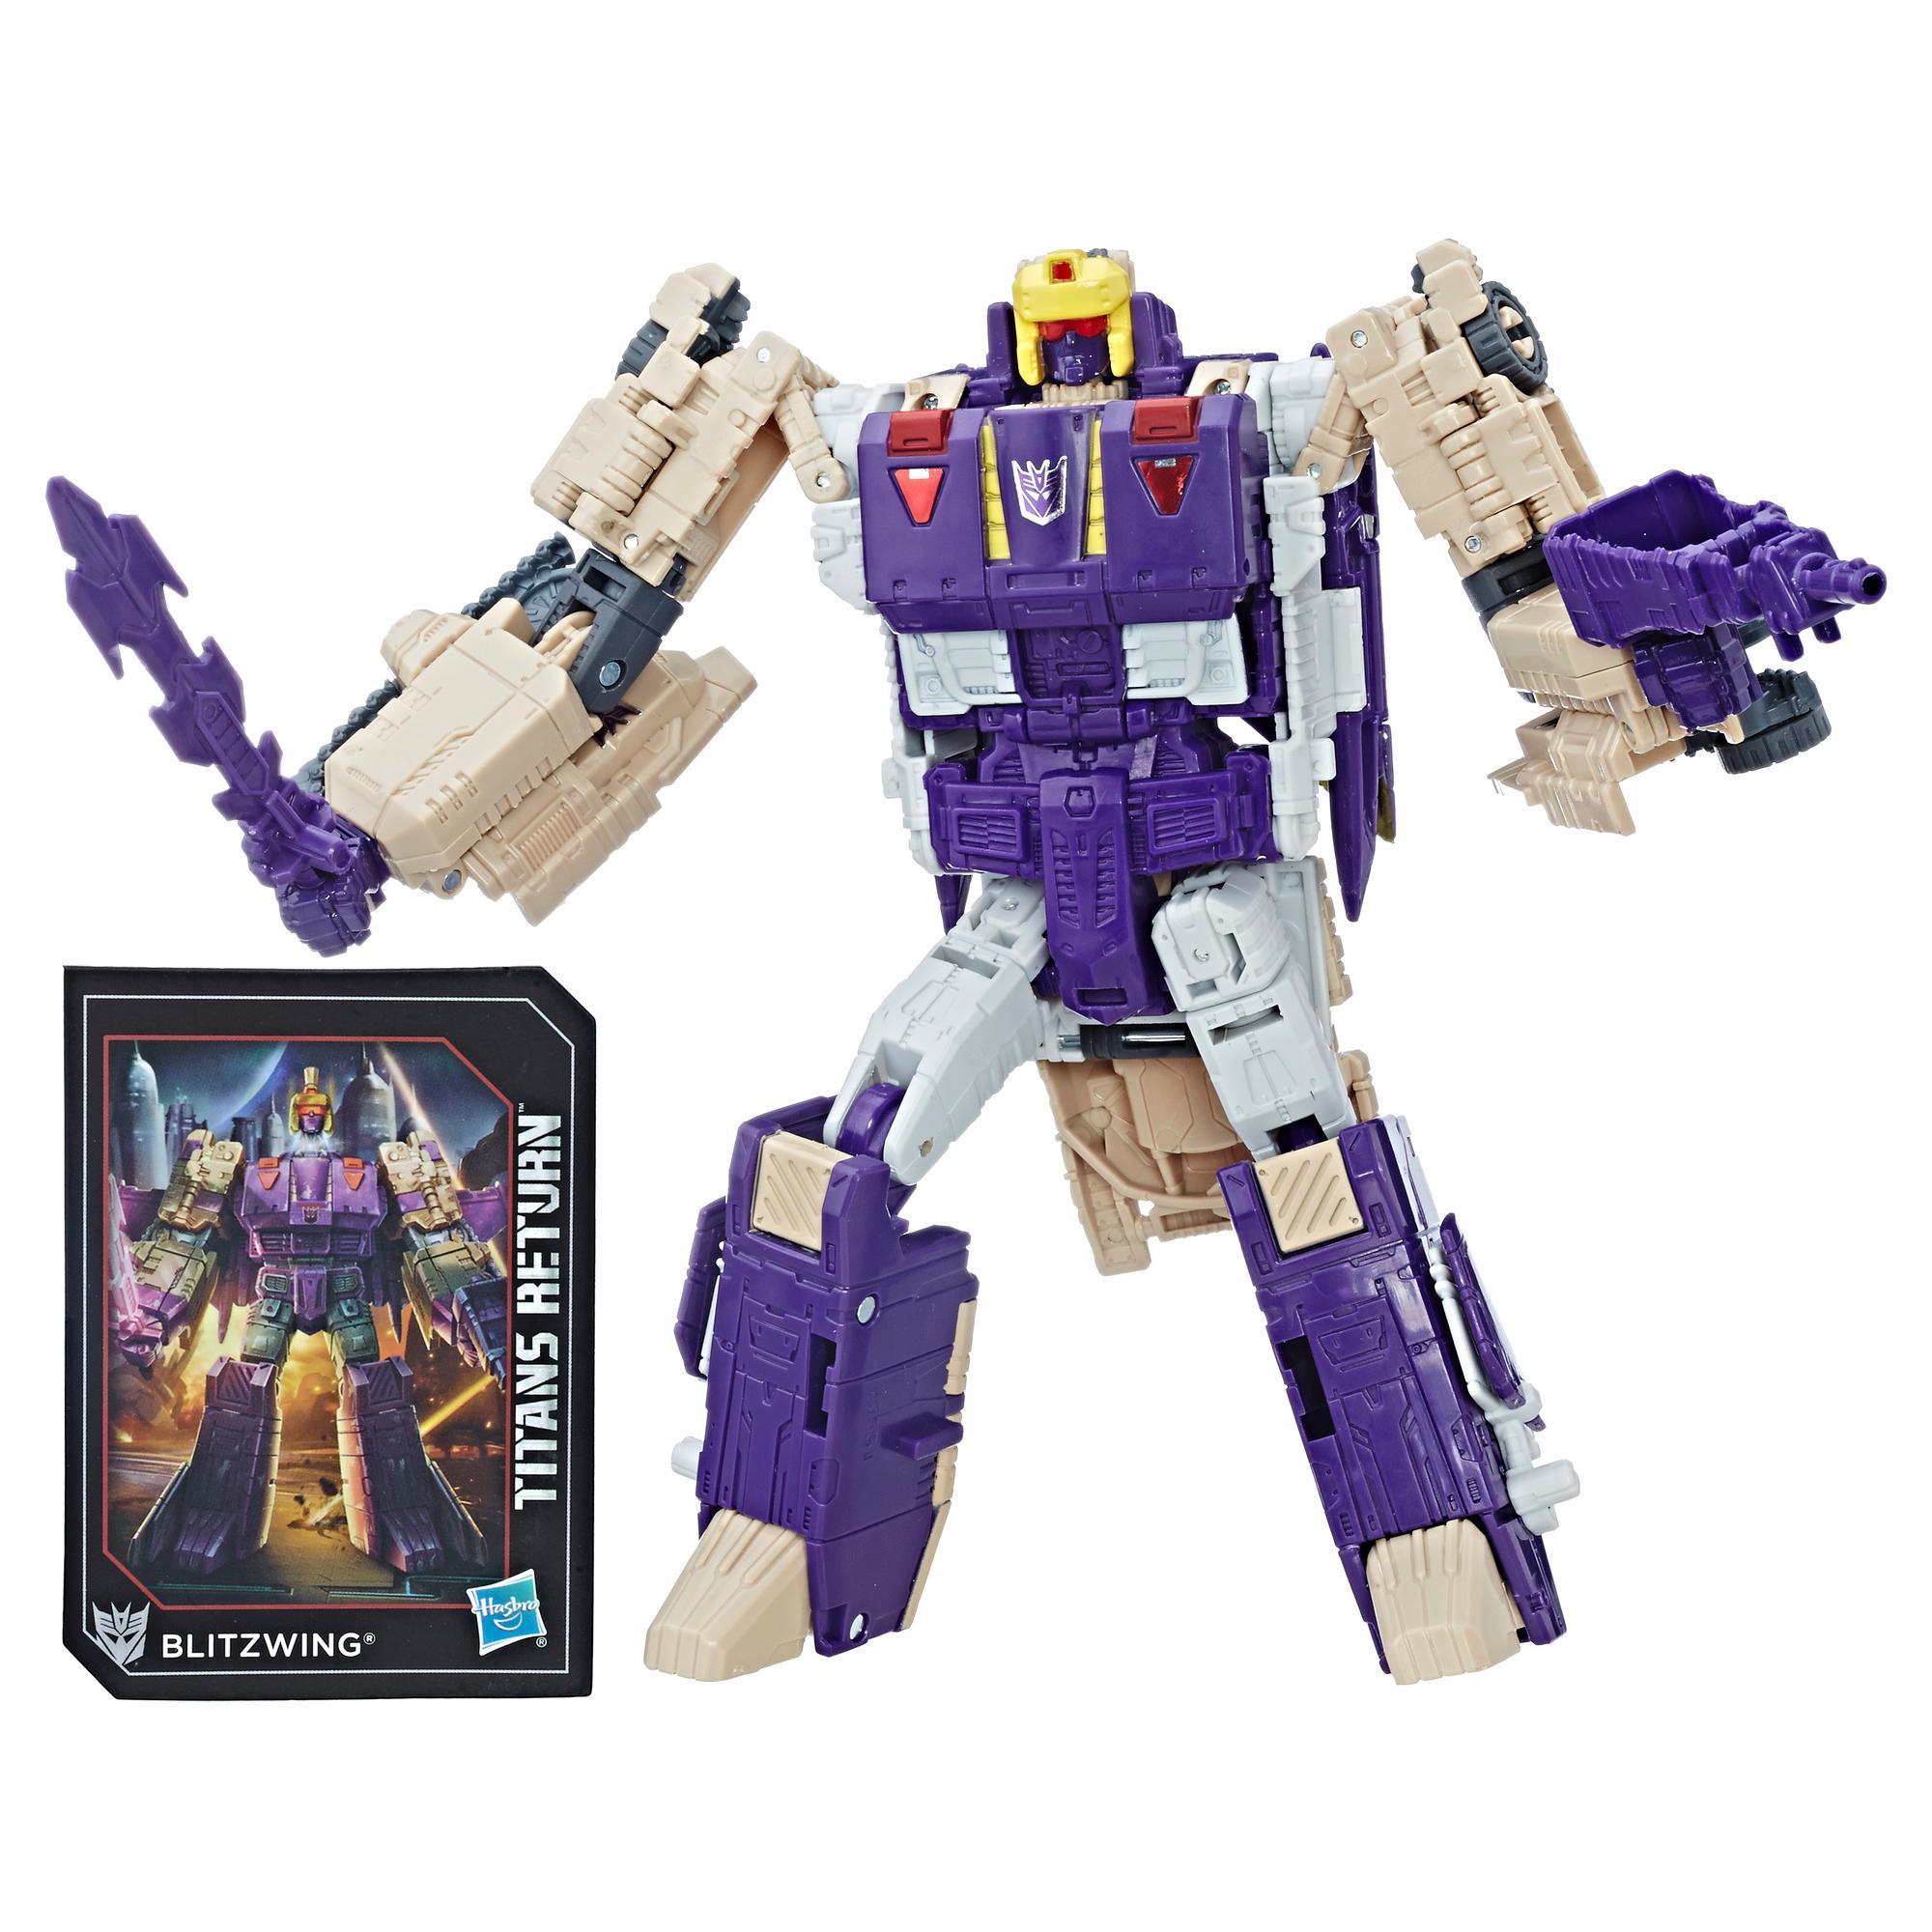 Transformers Generations Titans Return Voyager BLITZWING